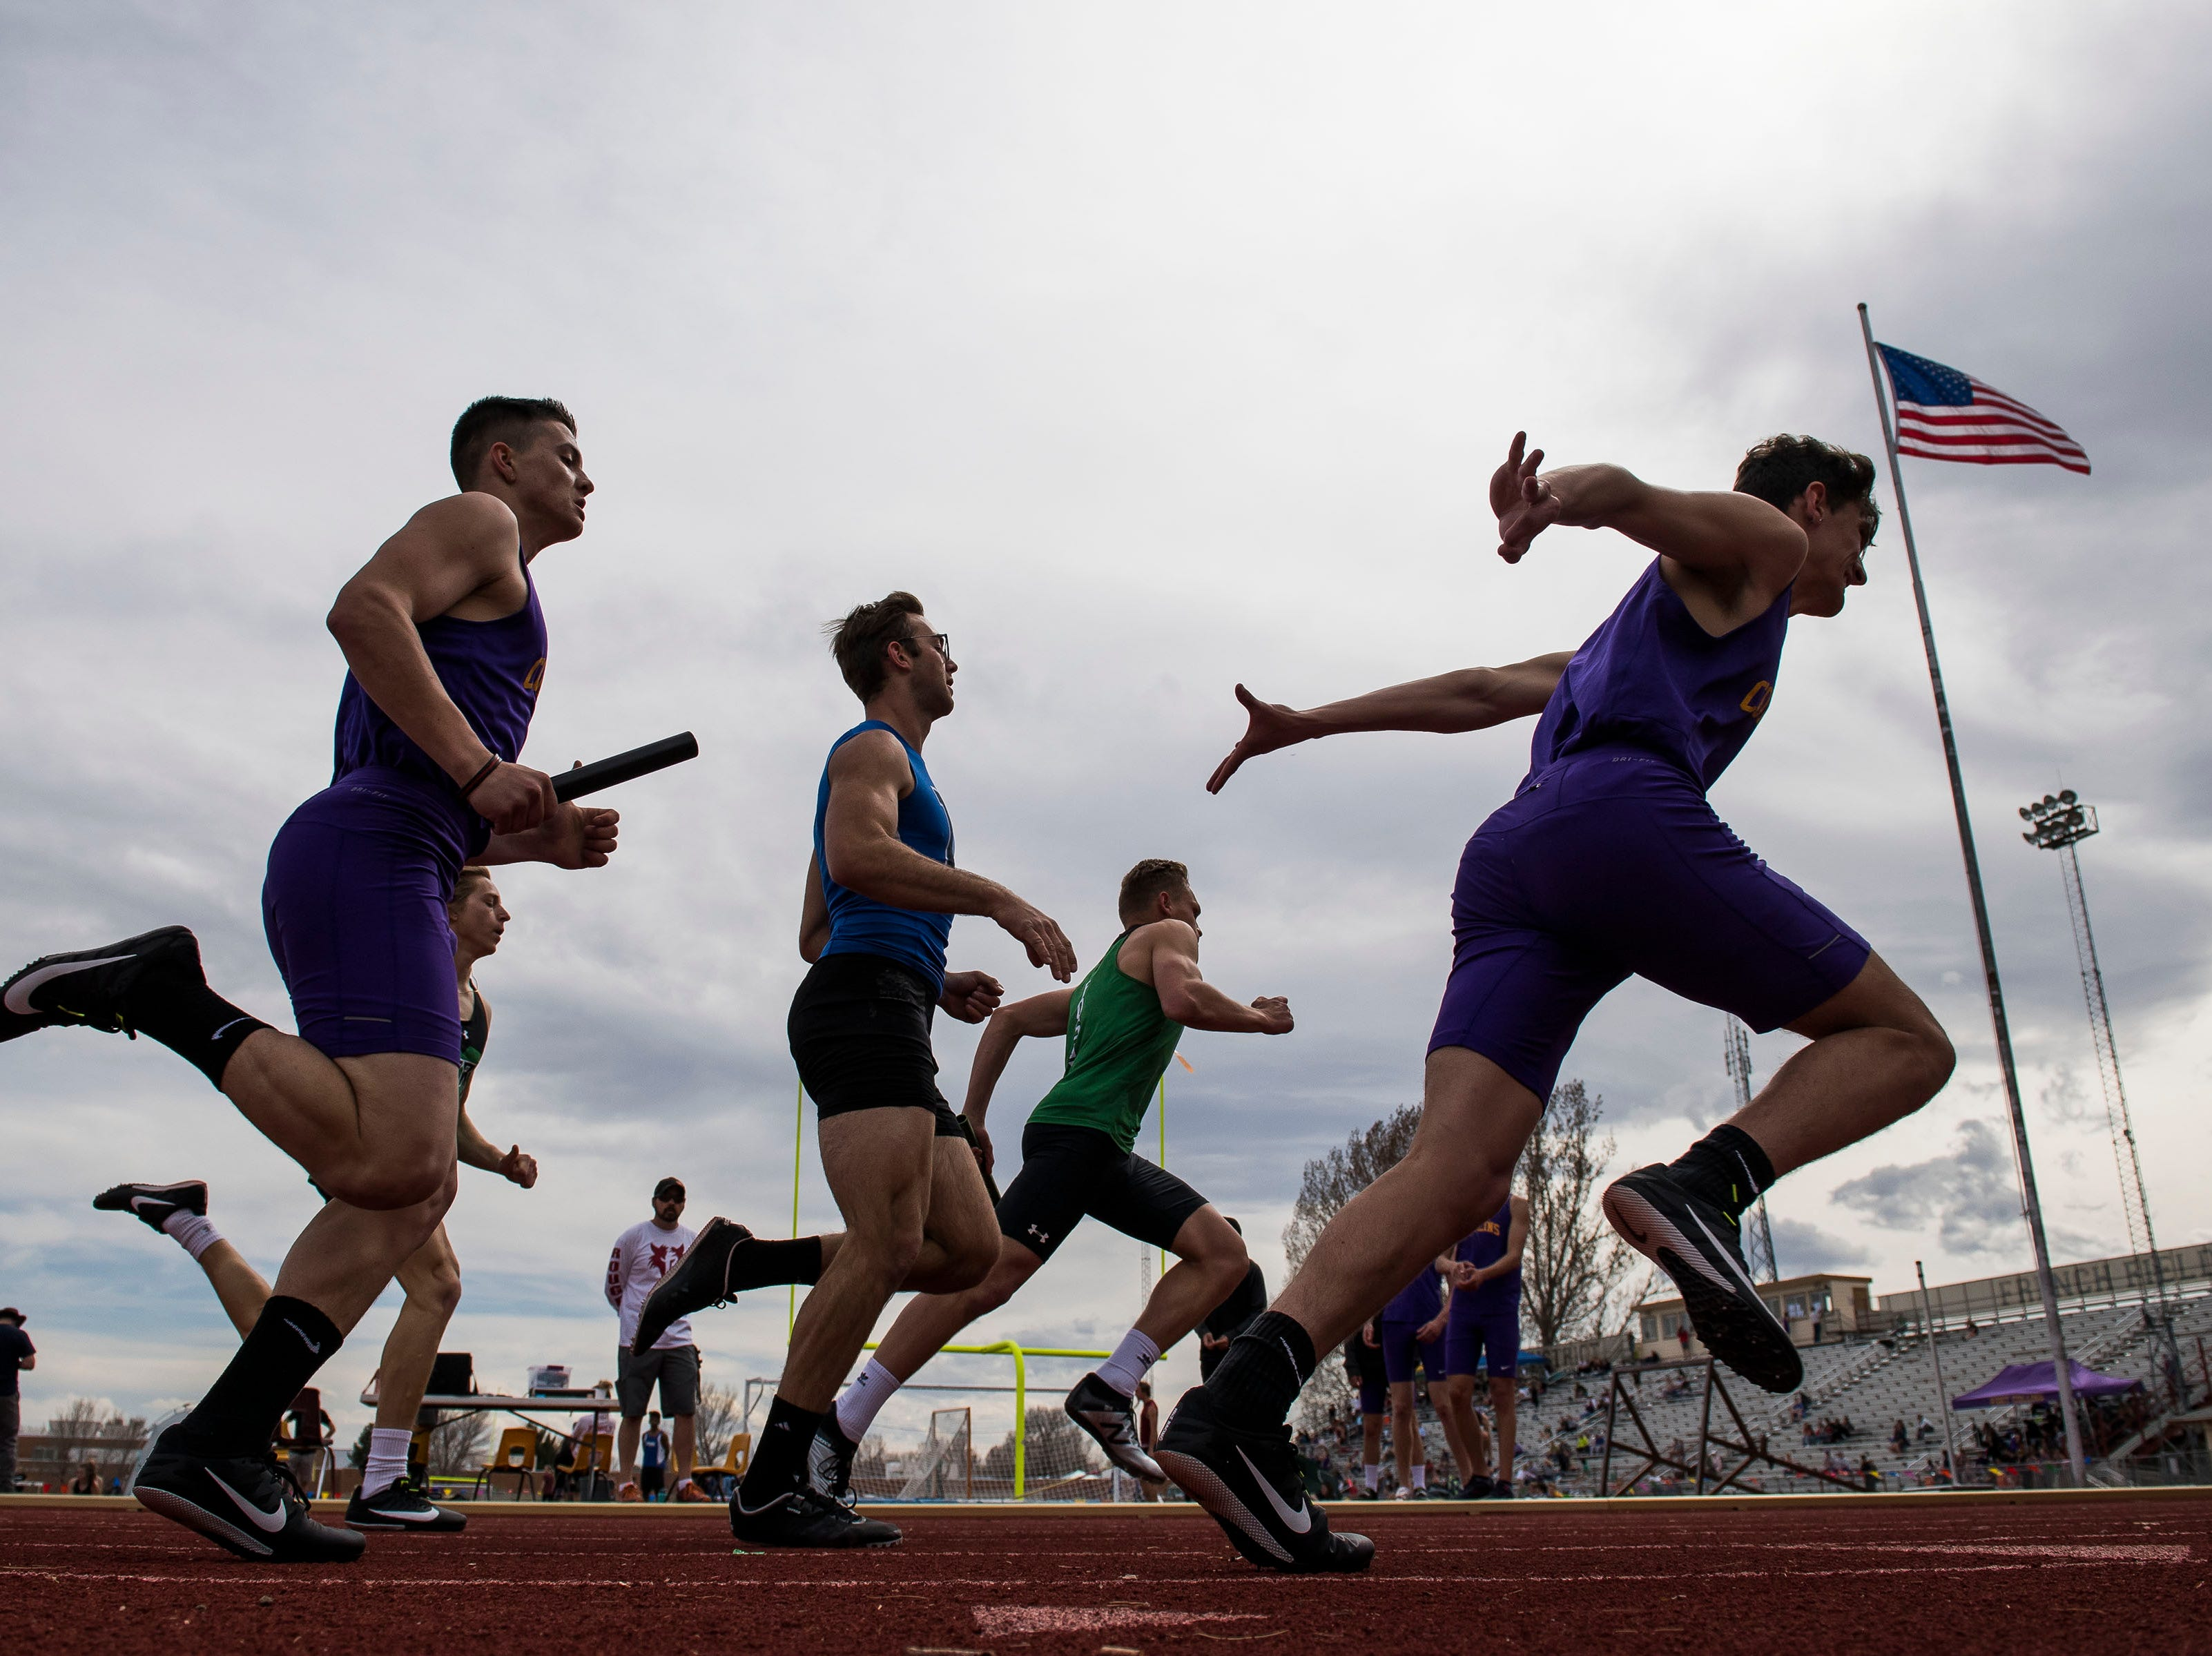 Fort Collins High School's Caleb Reed looks to hand off to teammate Ian Petruska in the boys 4x200-meter relay during the Randy Yaussi City Track Championships on Tuesday, April 9, 2019, at French Field in Fort Collins, Colo.